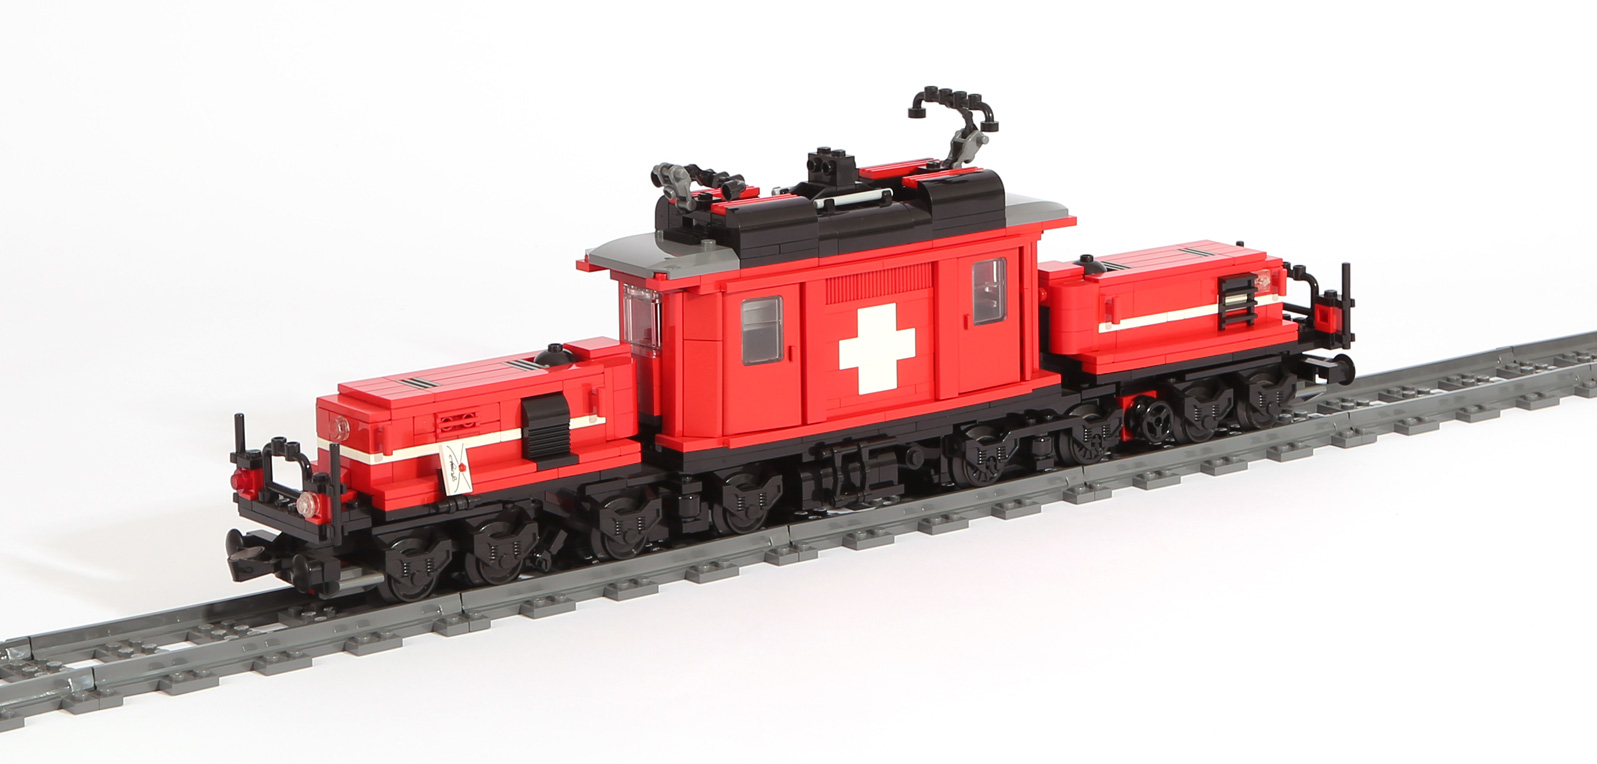 Swiss Krokodil – Original LEGO Set 10183